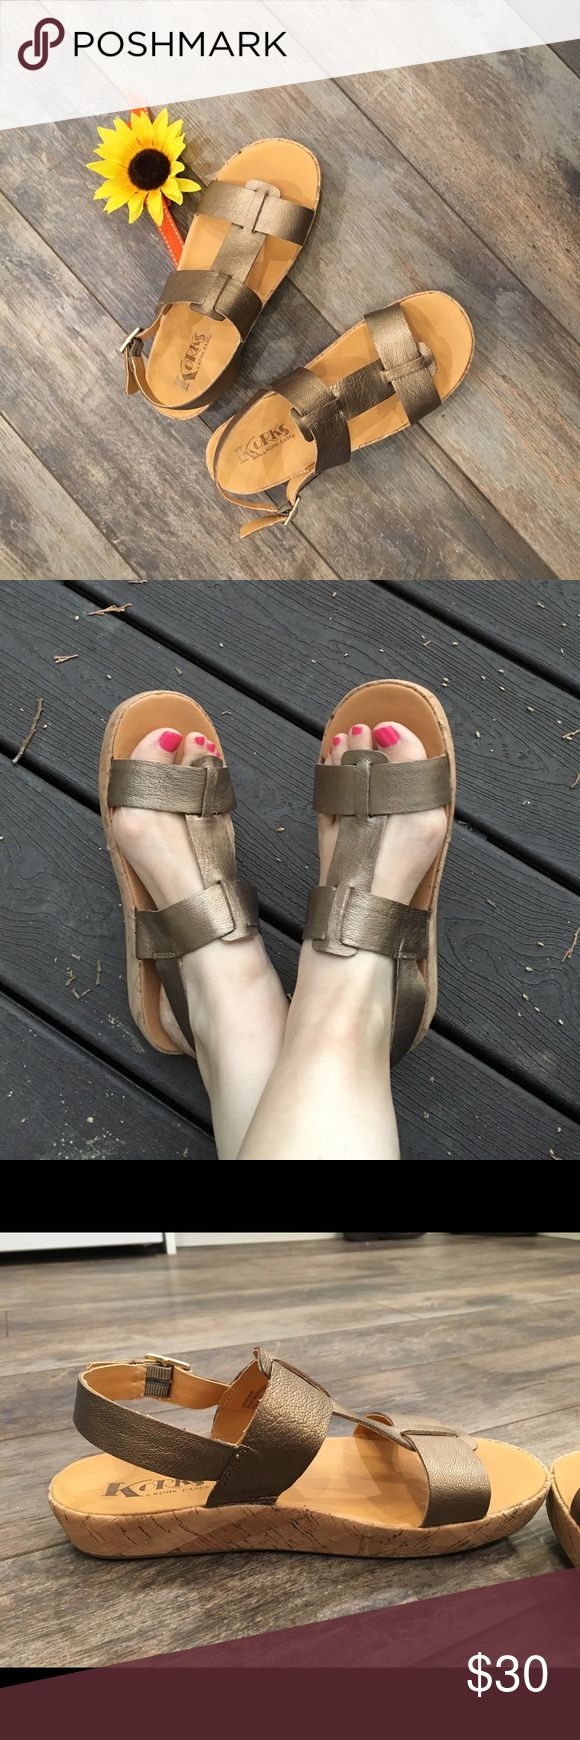 "♦️SANDAL SALE♦️Korks sandals Korks by Kork-Ease sandals.  1"" flat-form soles.  Bronze leather straps secured with gold-tone buckle.  Barely worn.  Stamped as size 7/38. Korks by Kork-Ease Shoes Sandals"